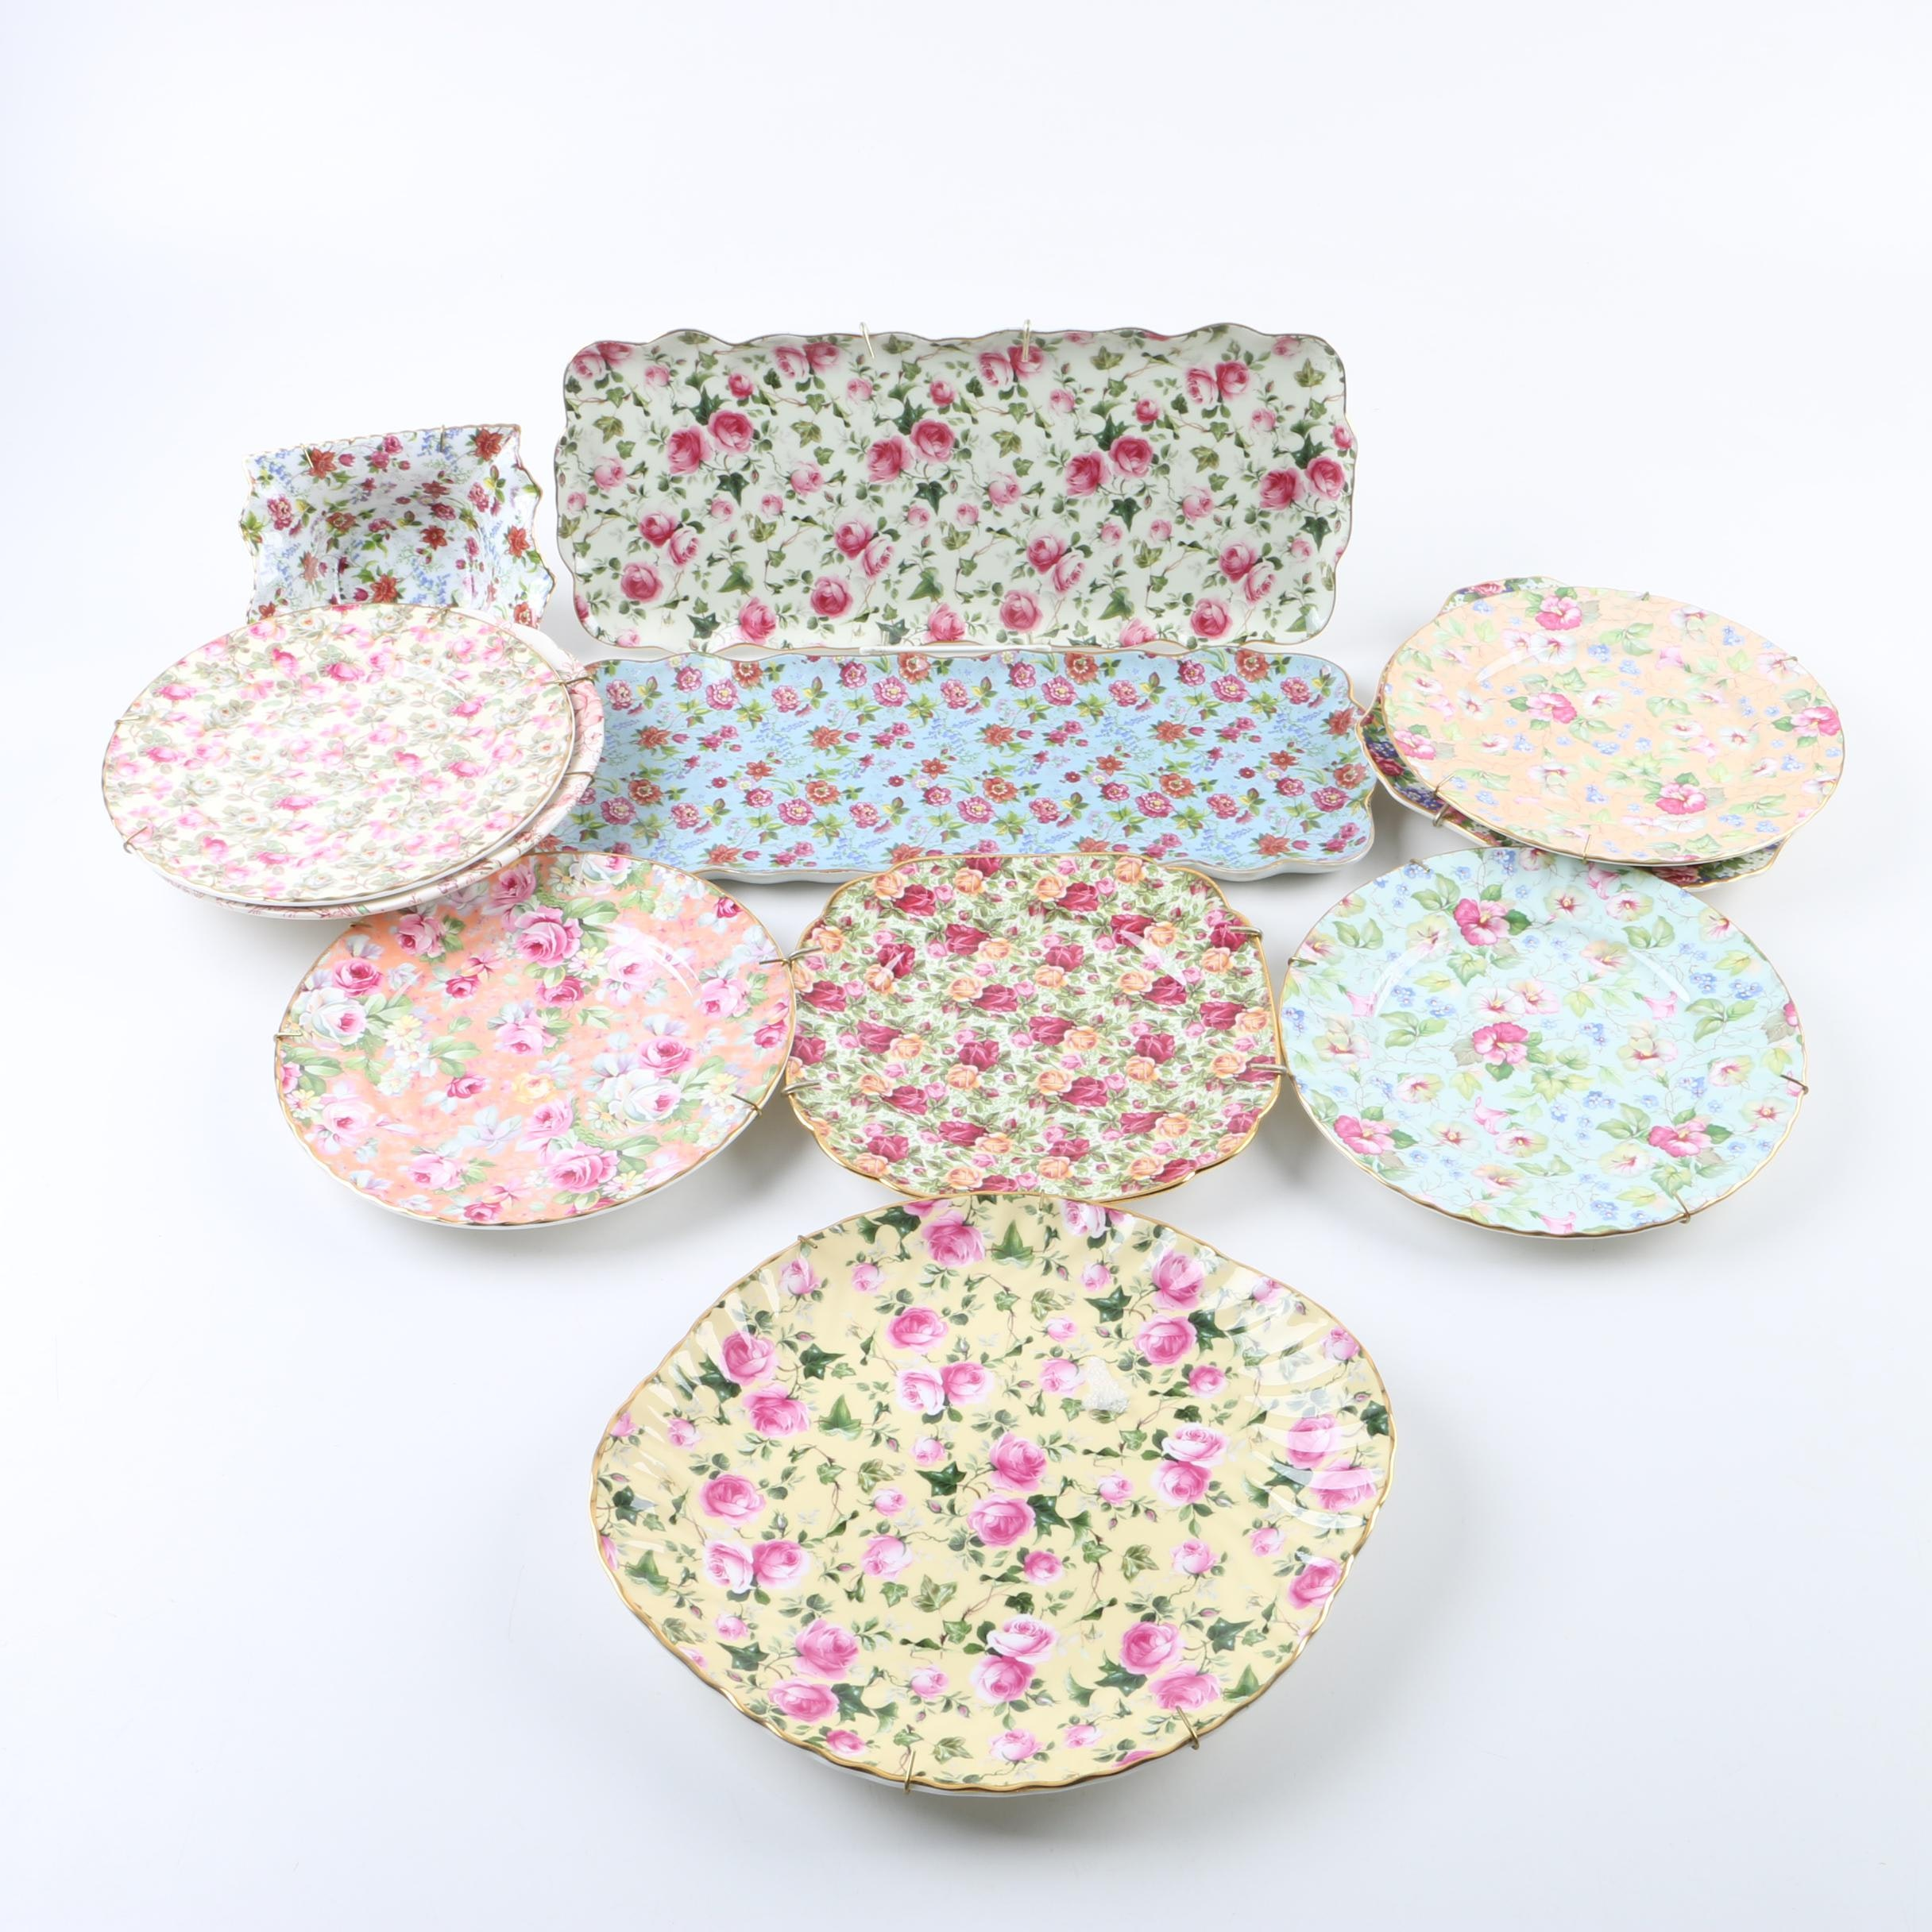 Collection of Floral Chintz Ceramic Serveware including Royal Winton